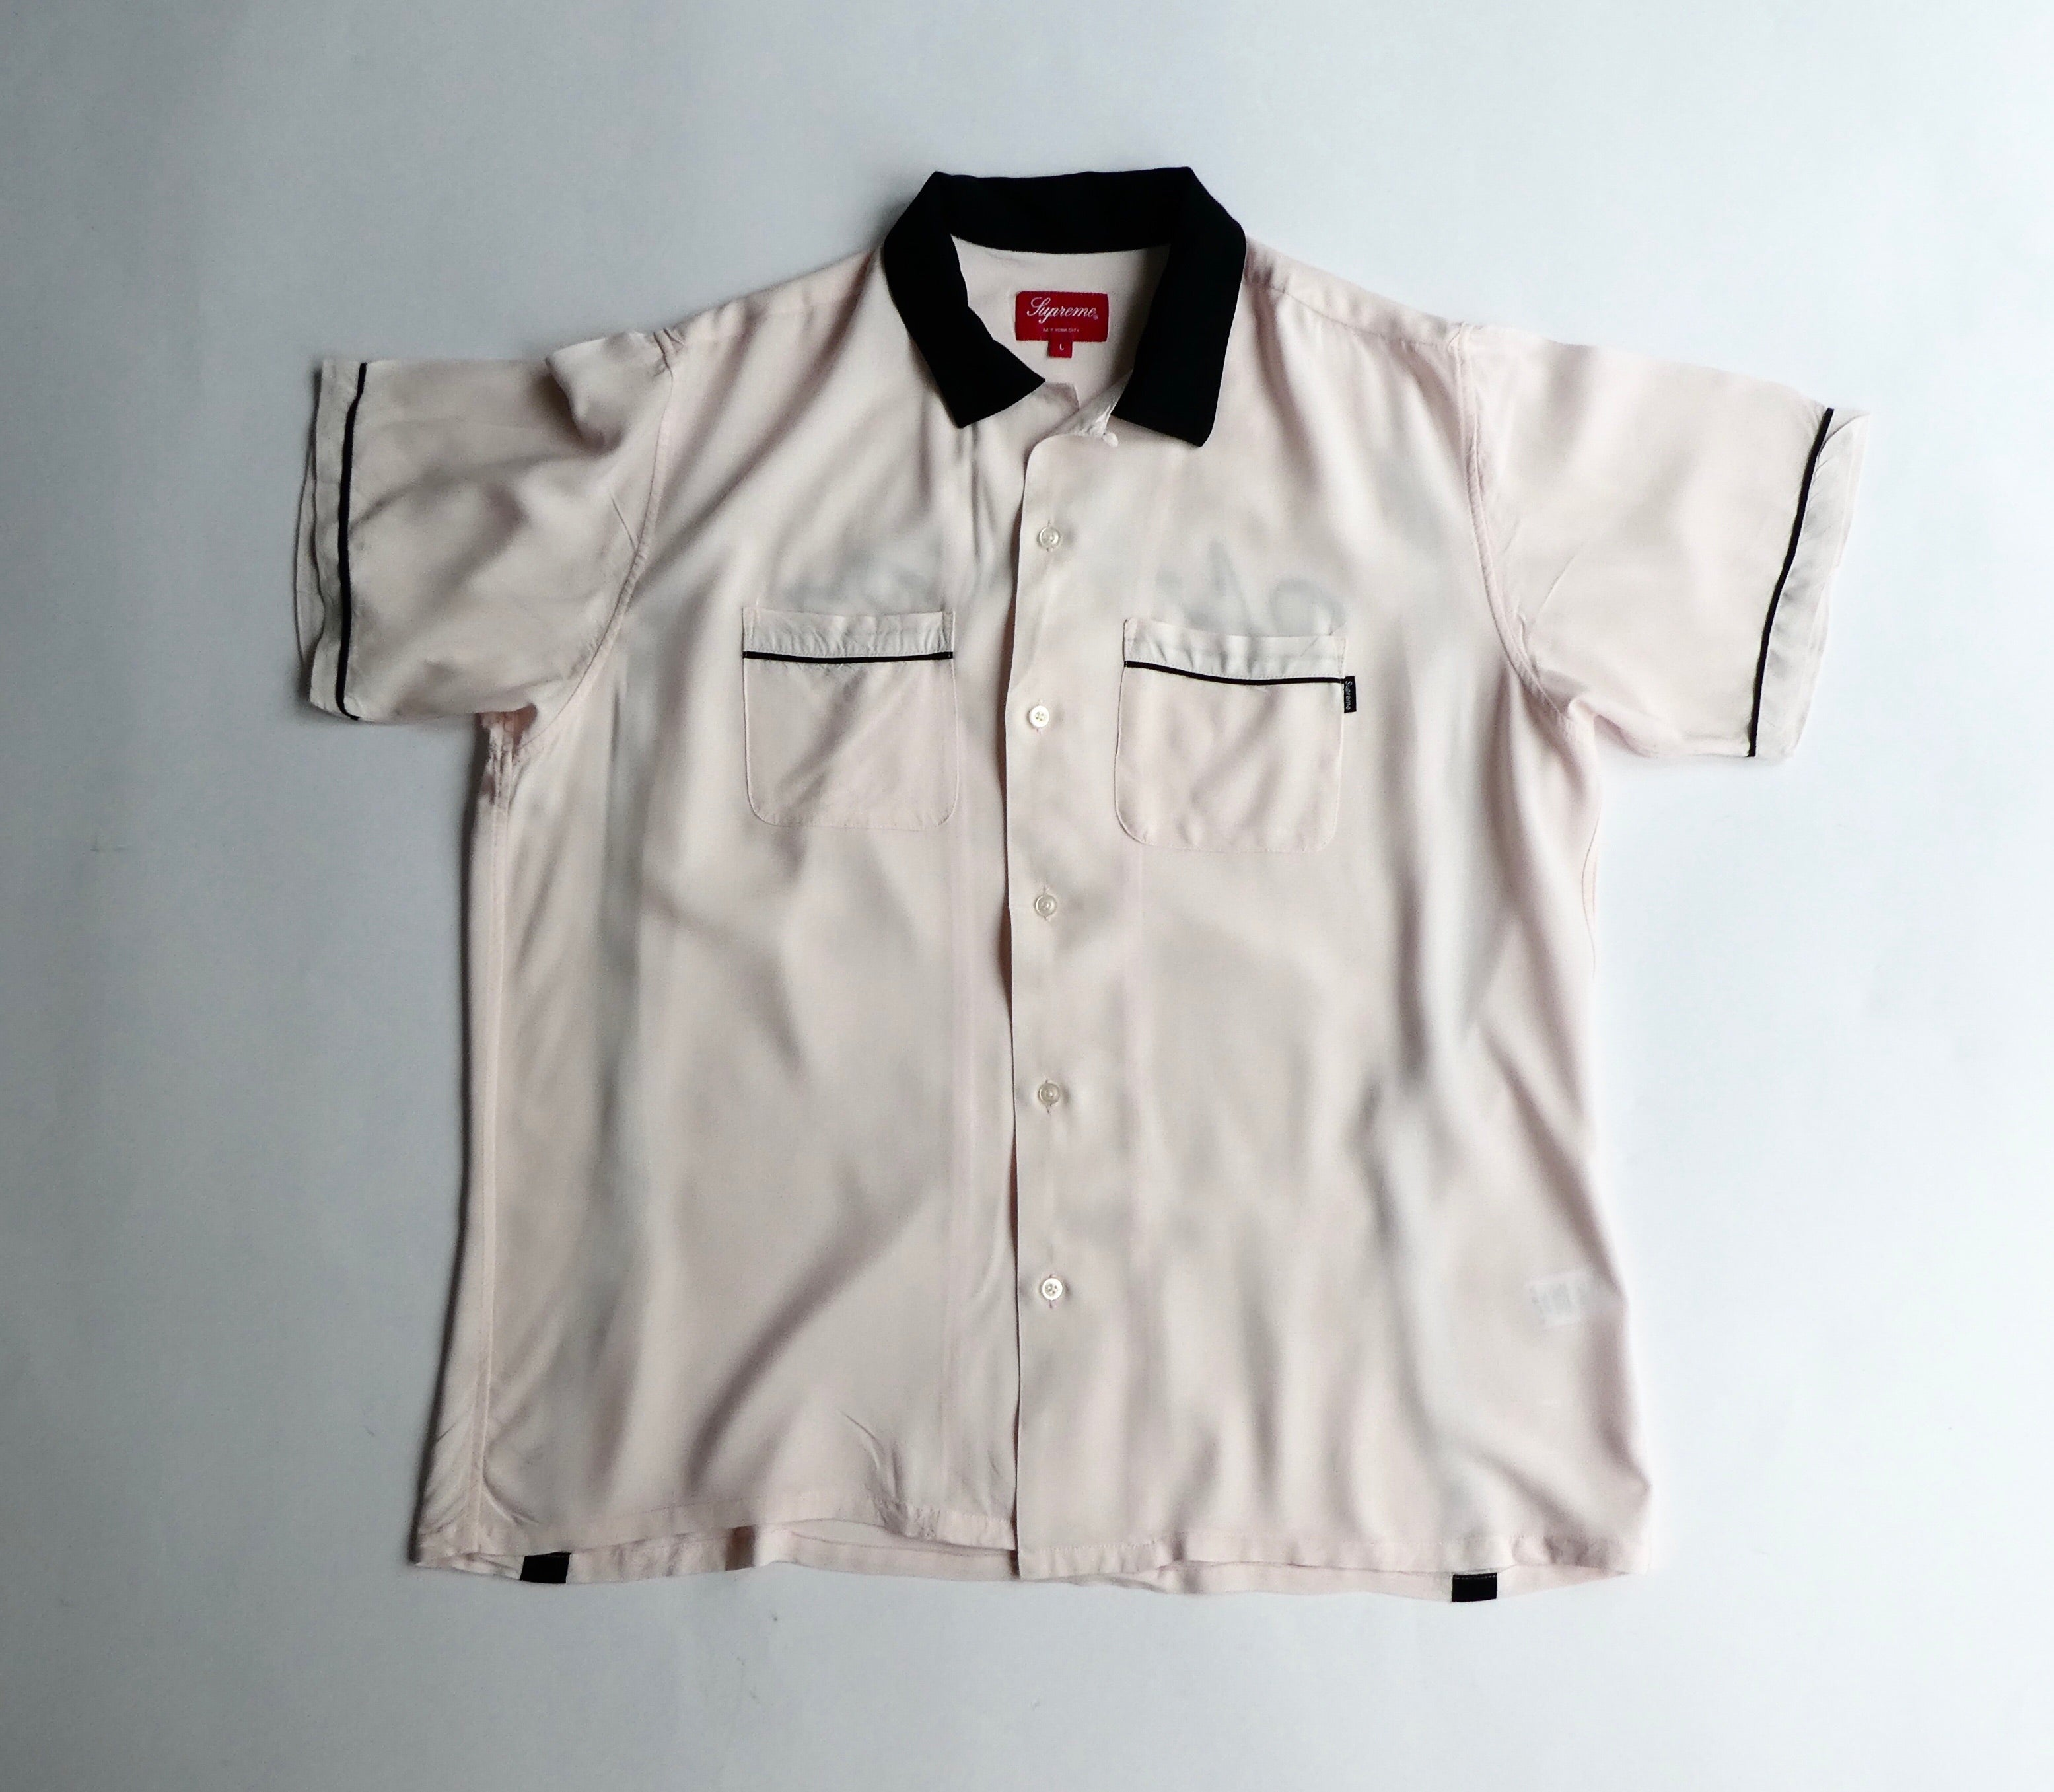 Supreme x Playboy Rayon Bowling Shirt - large